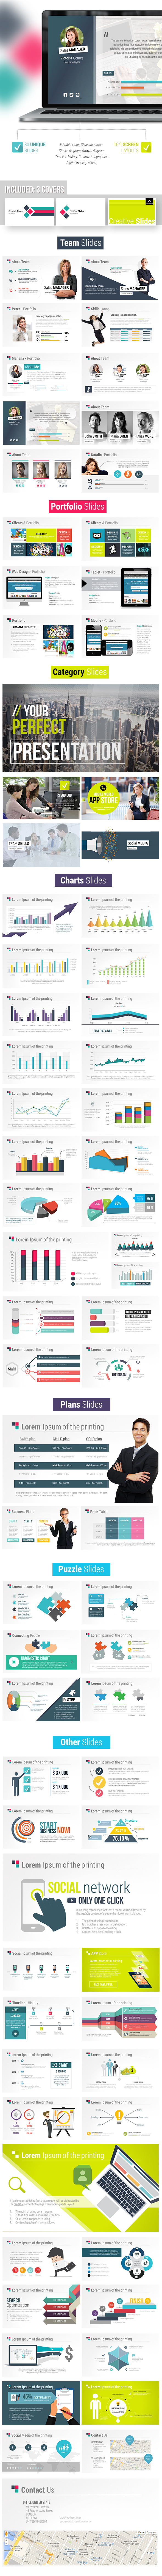 GraphicRiver Fresh Digital Slides Creative Powerpoint Templat 10687039